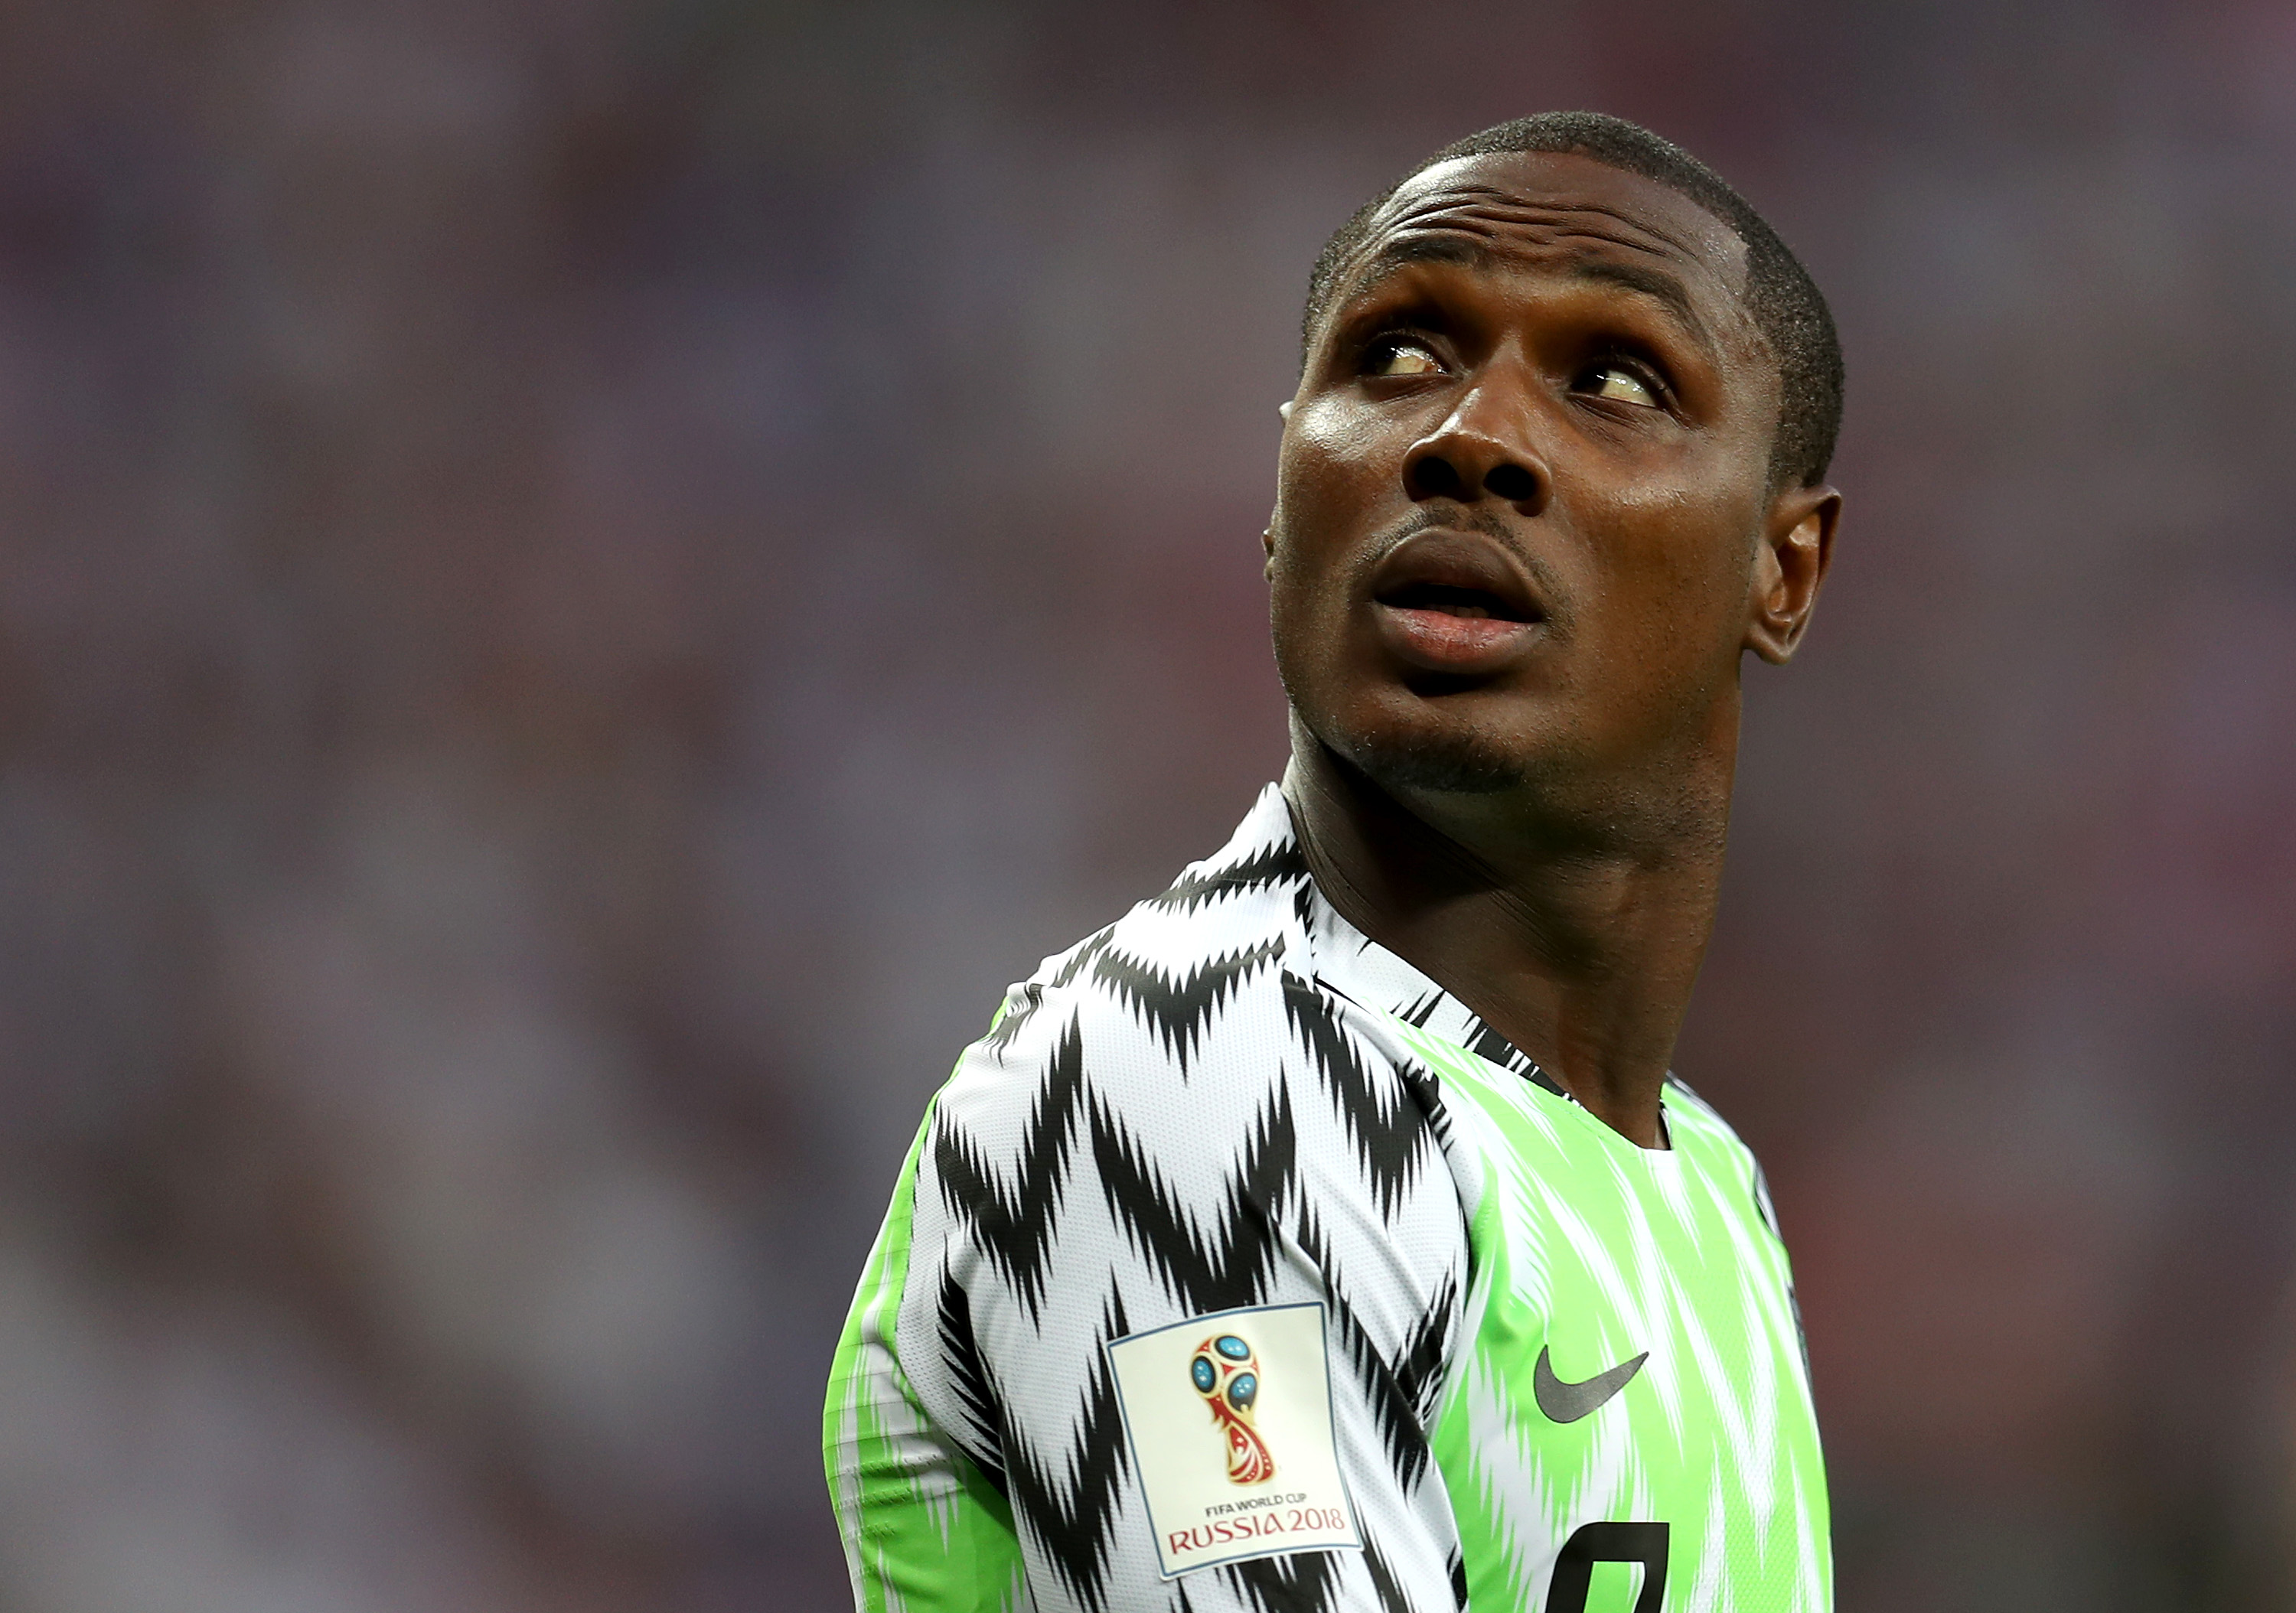 Odion Ighalo training away from Manchester United first team due to coronavirus precautions